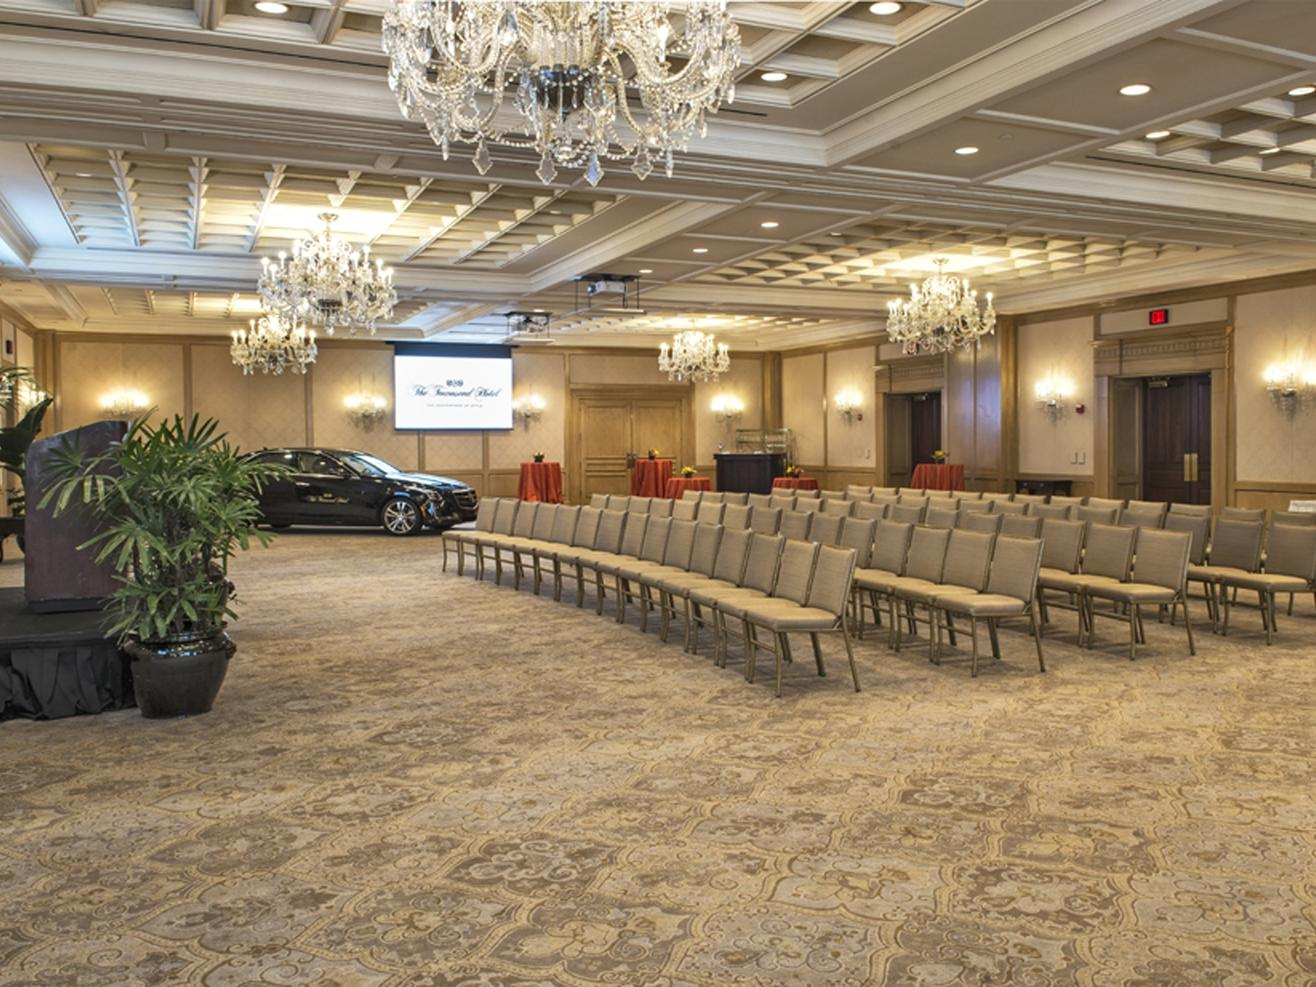 rows of chairs and a car in a ballroom